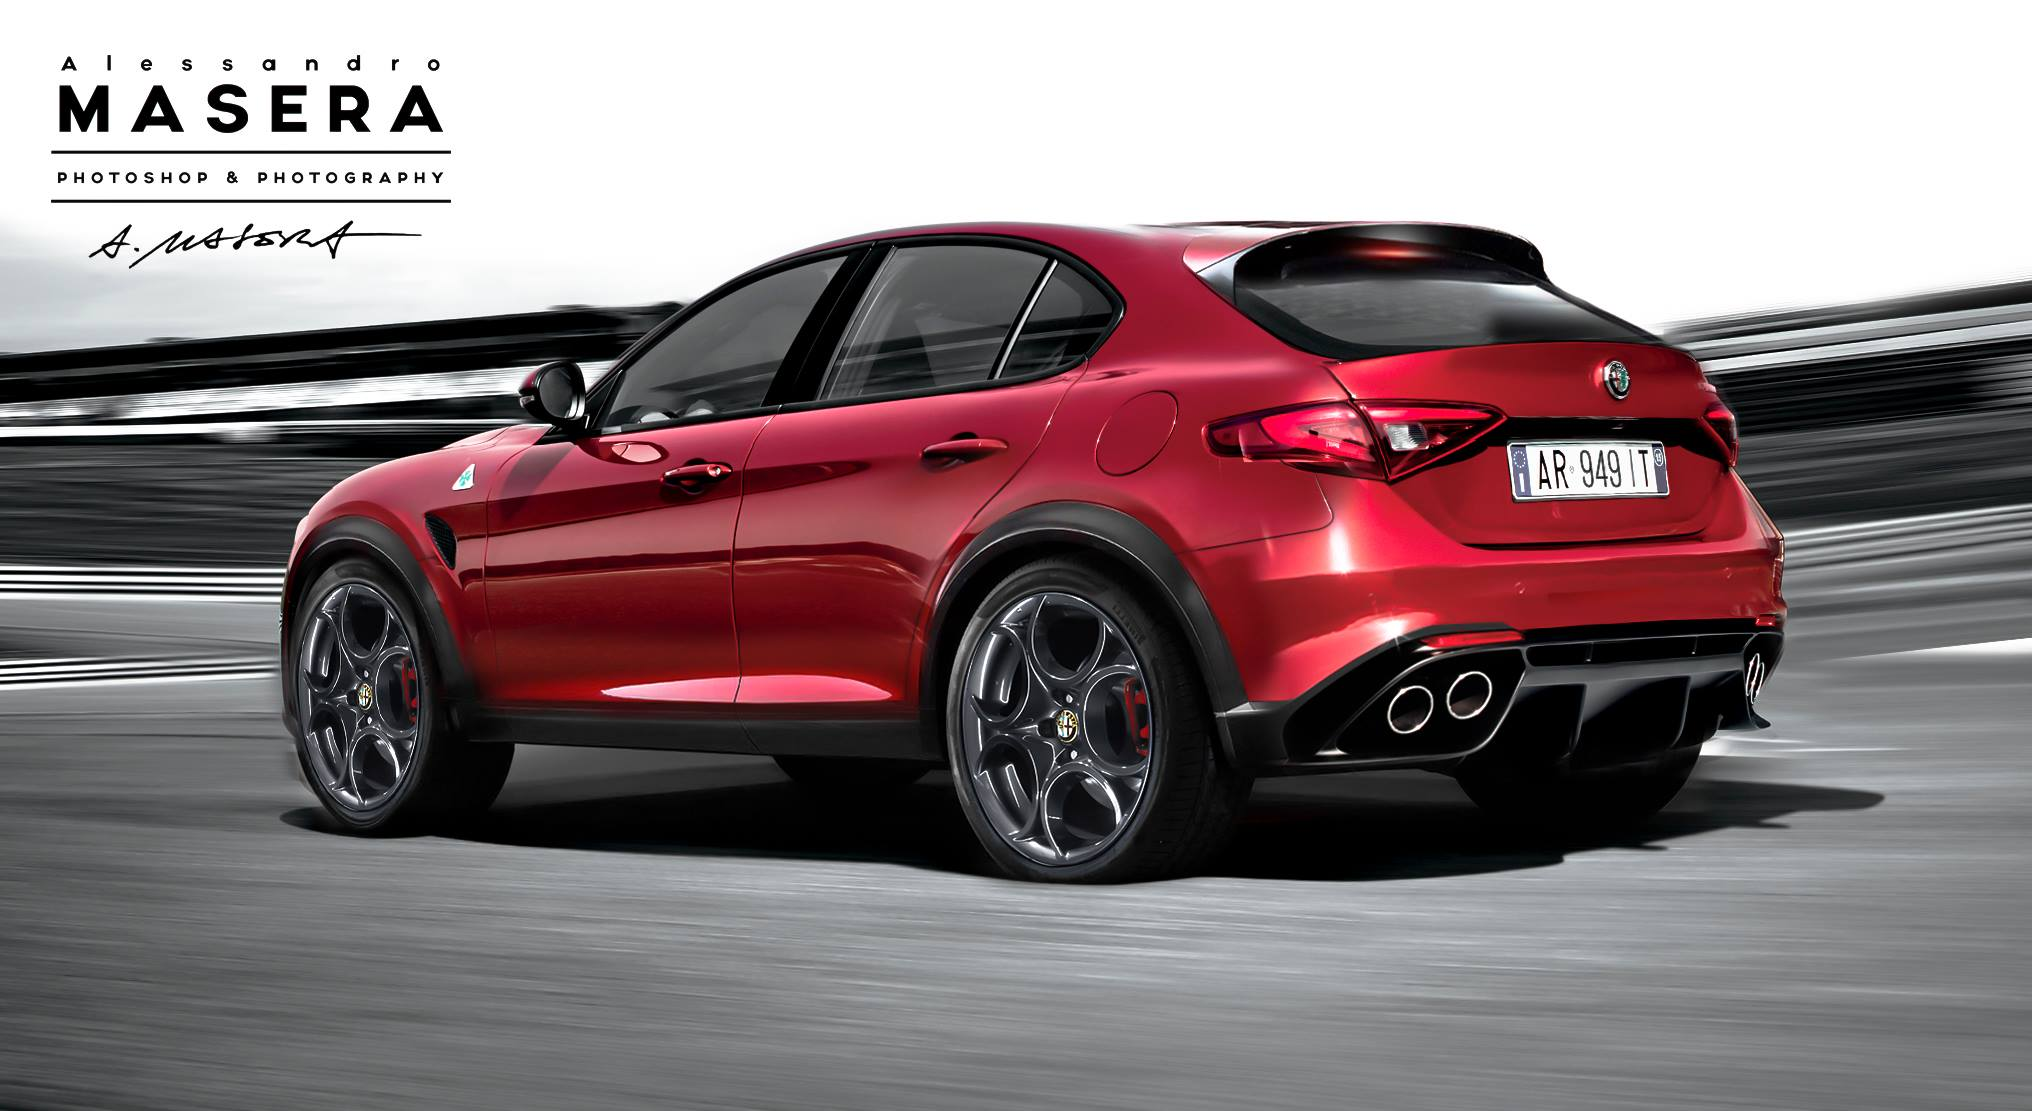 alfa-romeo-d-suv-rendered-with-giulia-styling-we-want-one-now_2-2